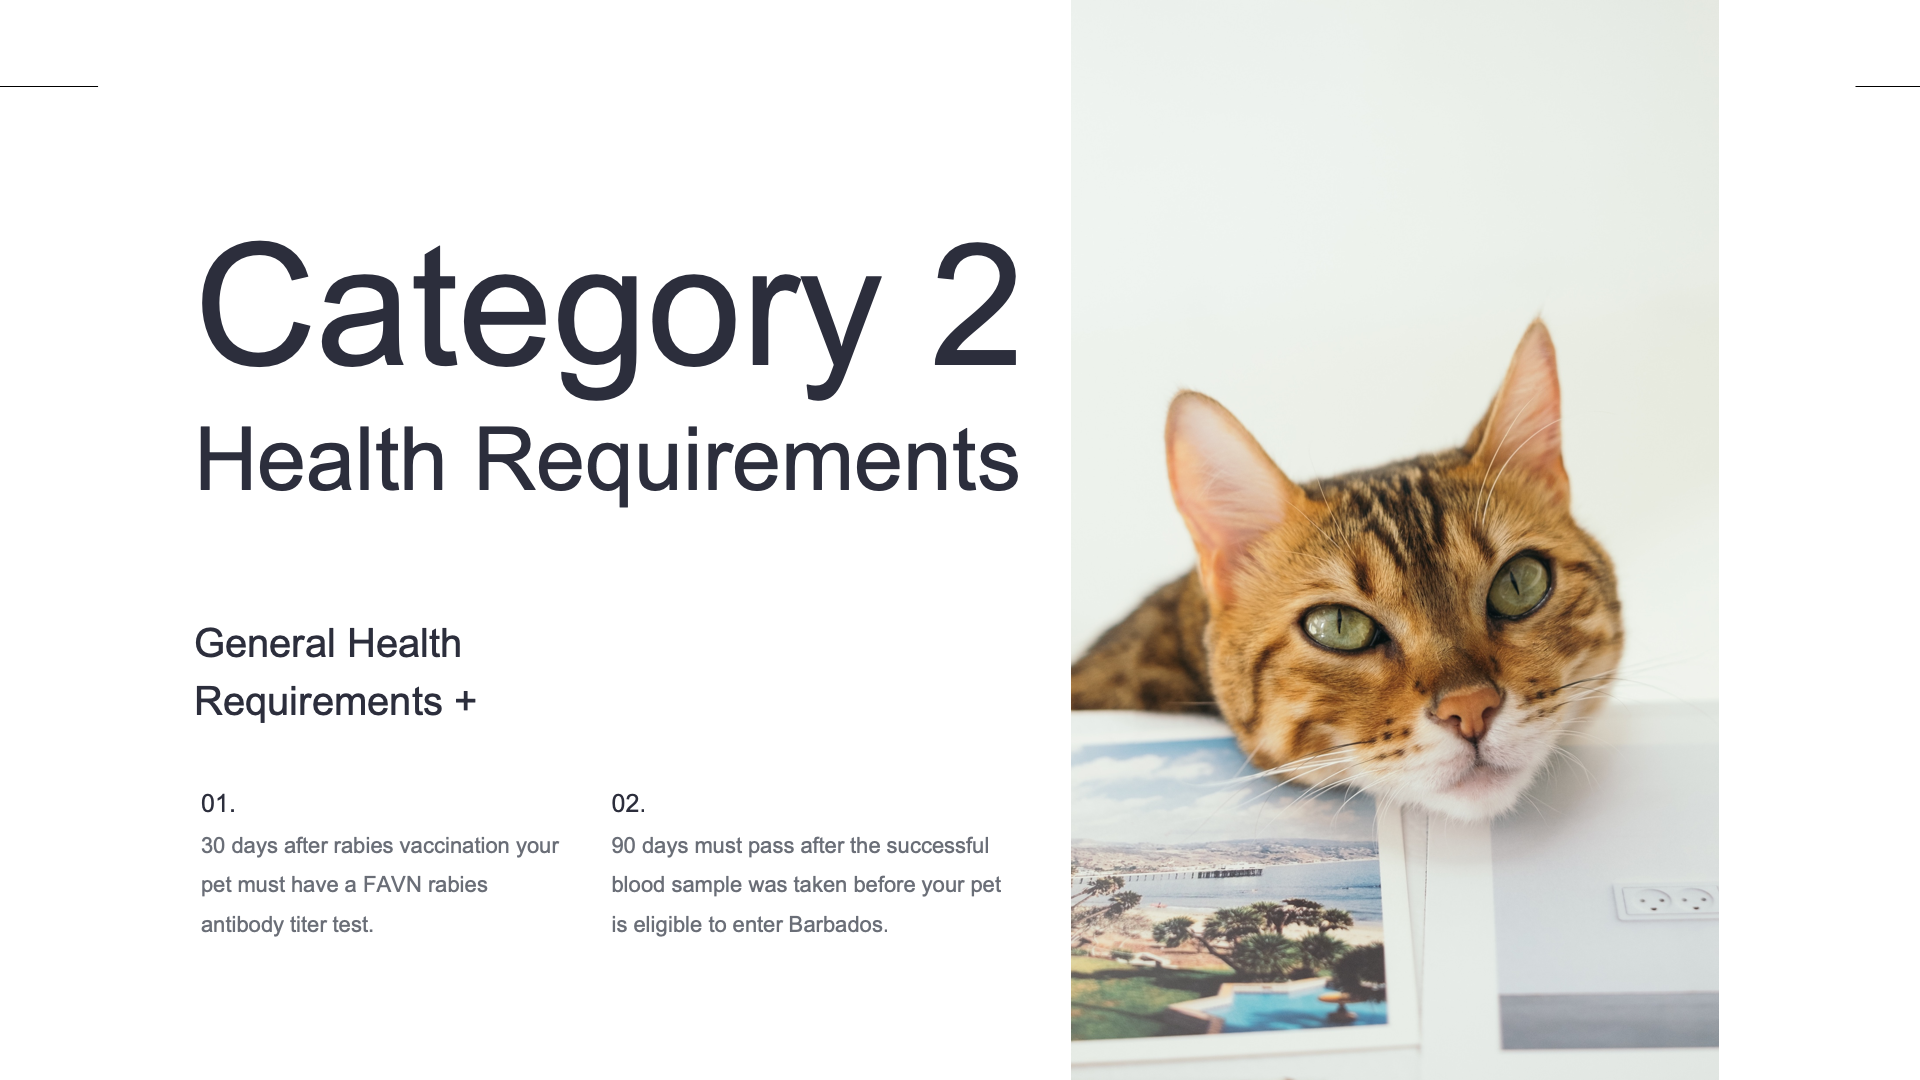 Category 2 Health Requirements